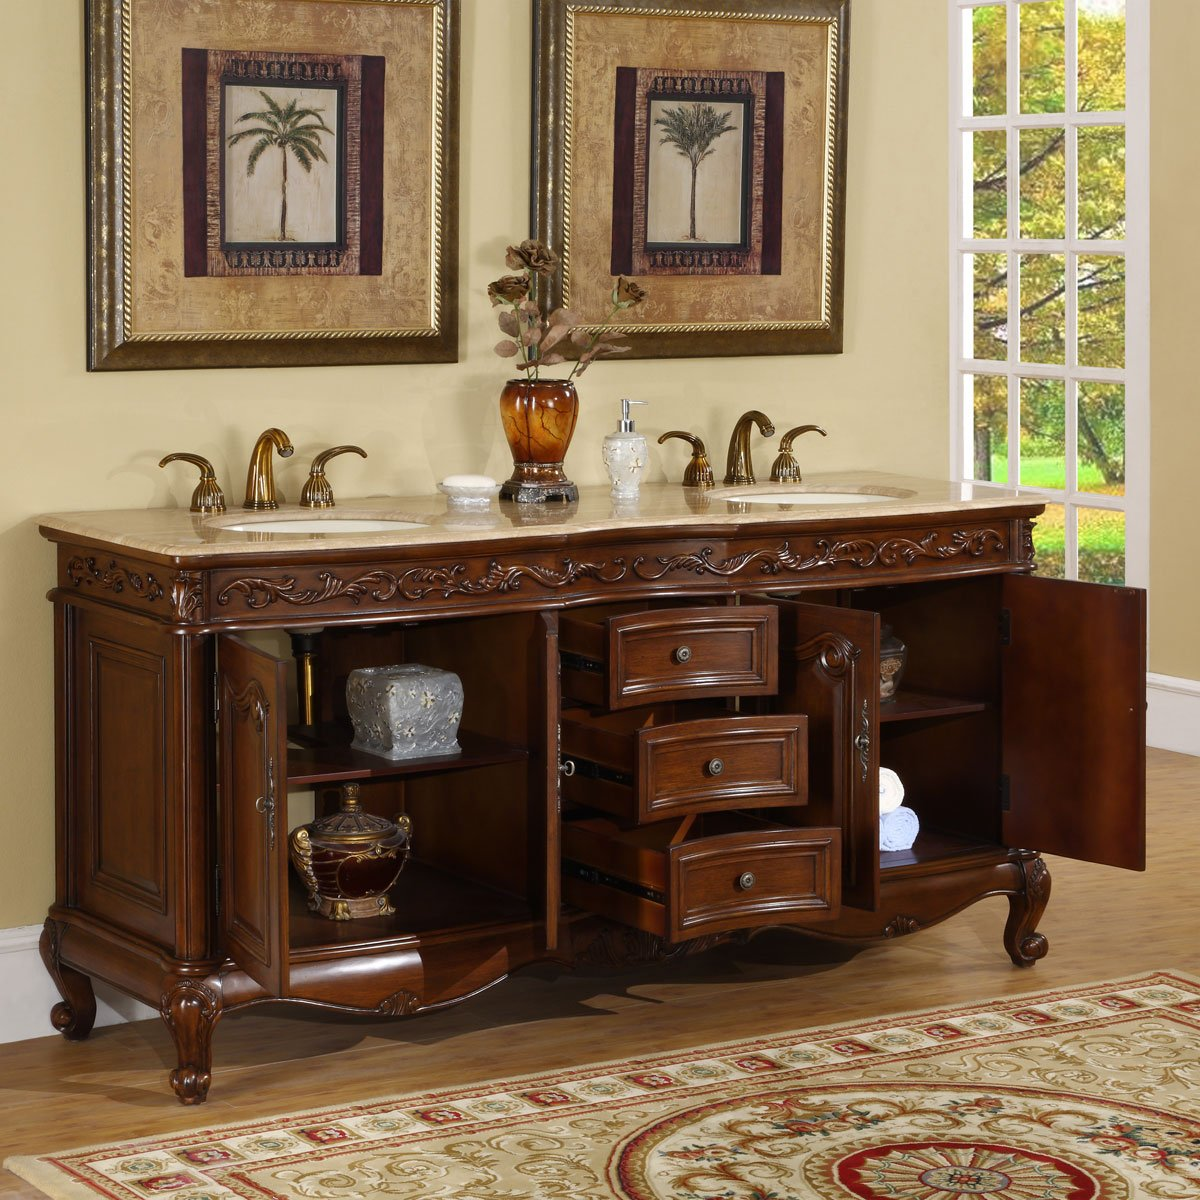 Silkroad Exclusive Travertine Stone Top Double Sink Bathroom Vanity with Bath Cabinet, 72-Inch by Silkroad Exclusive (Image #2)